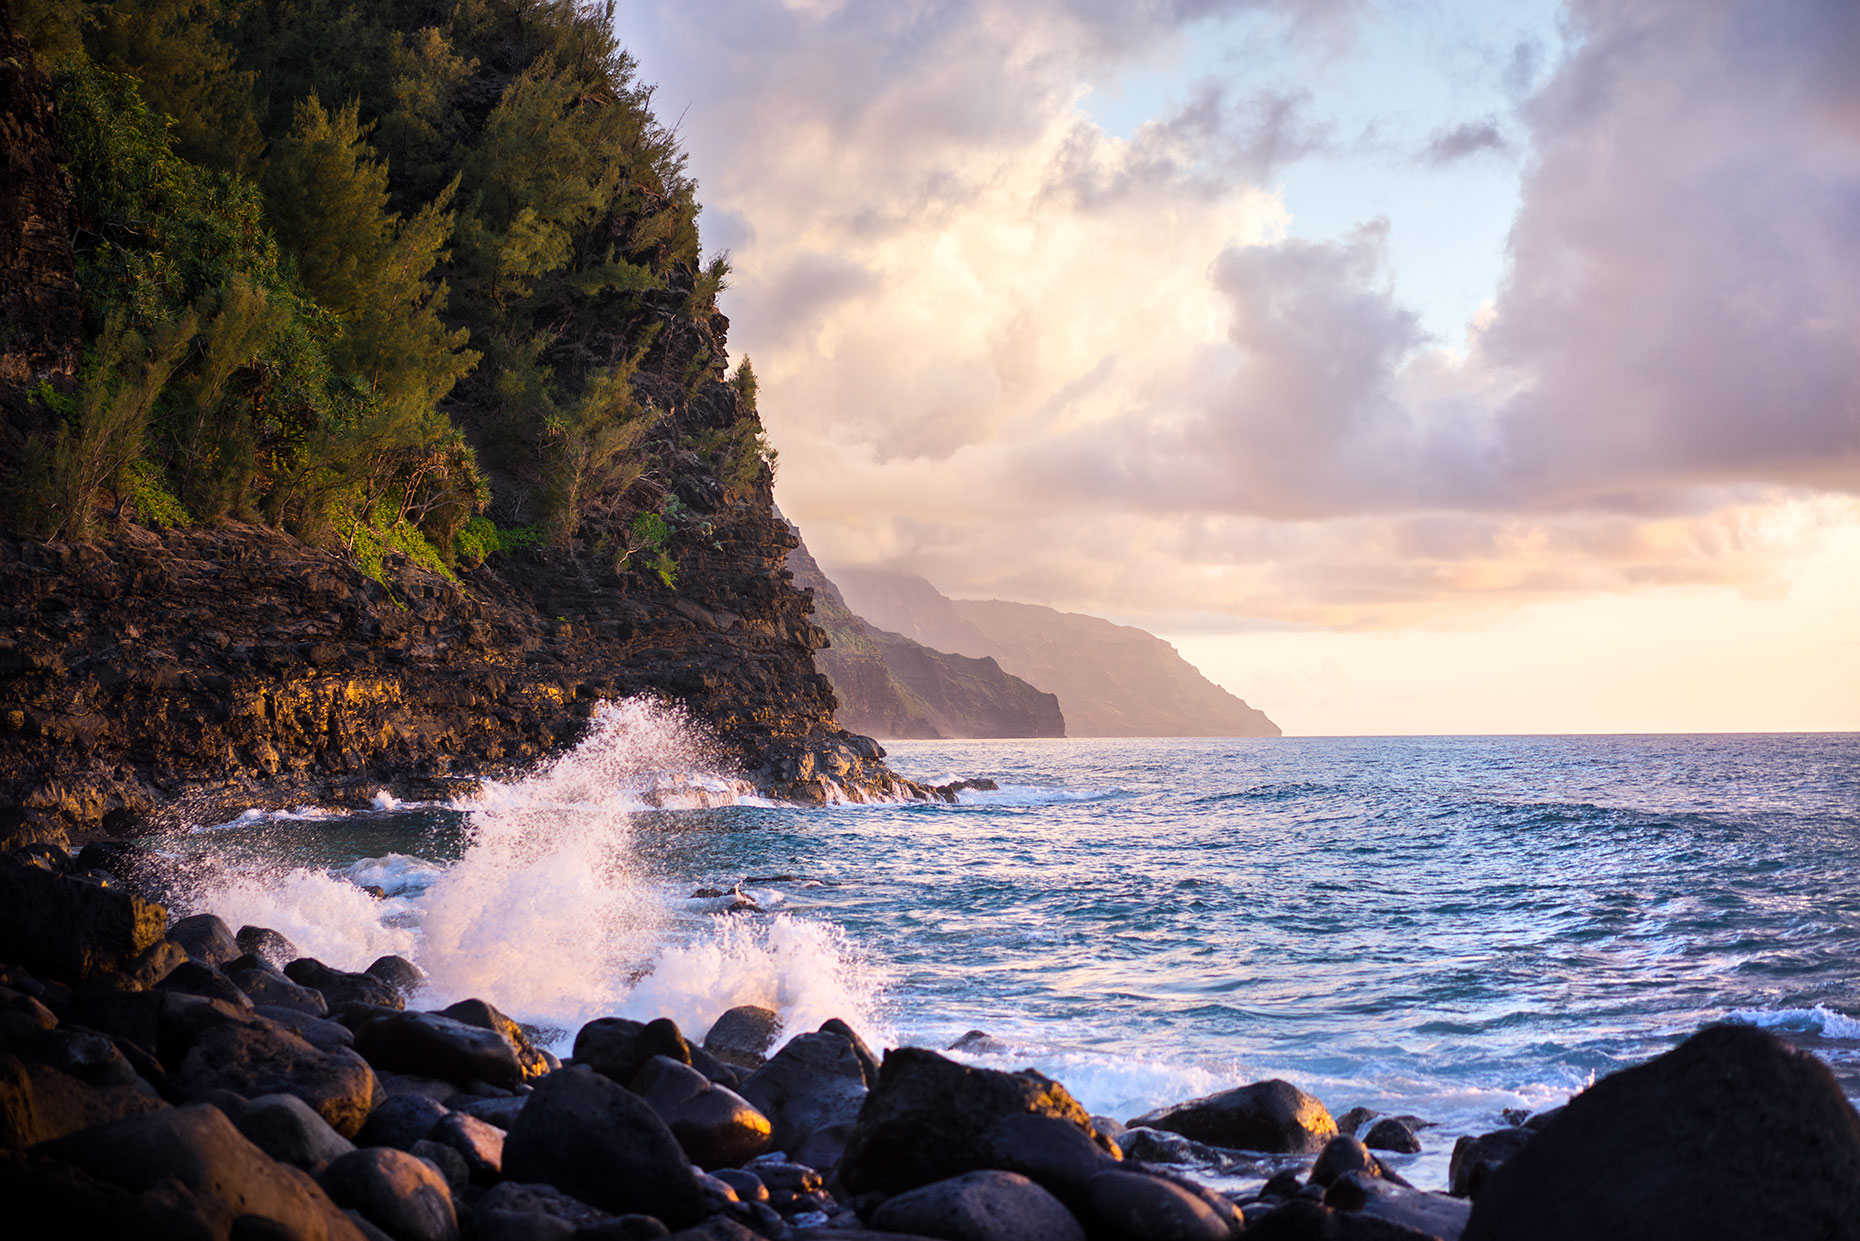 NaPali_Coast_Sunset_DSC3316